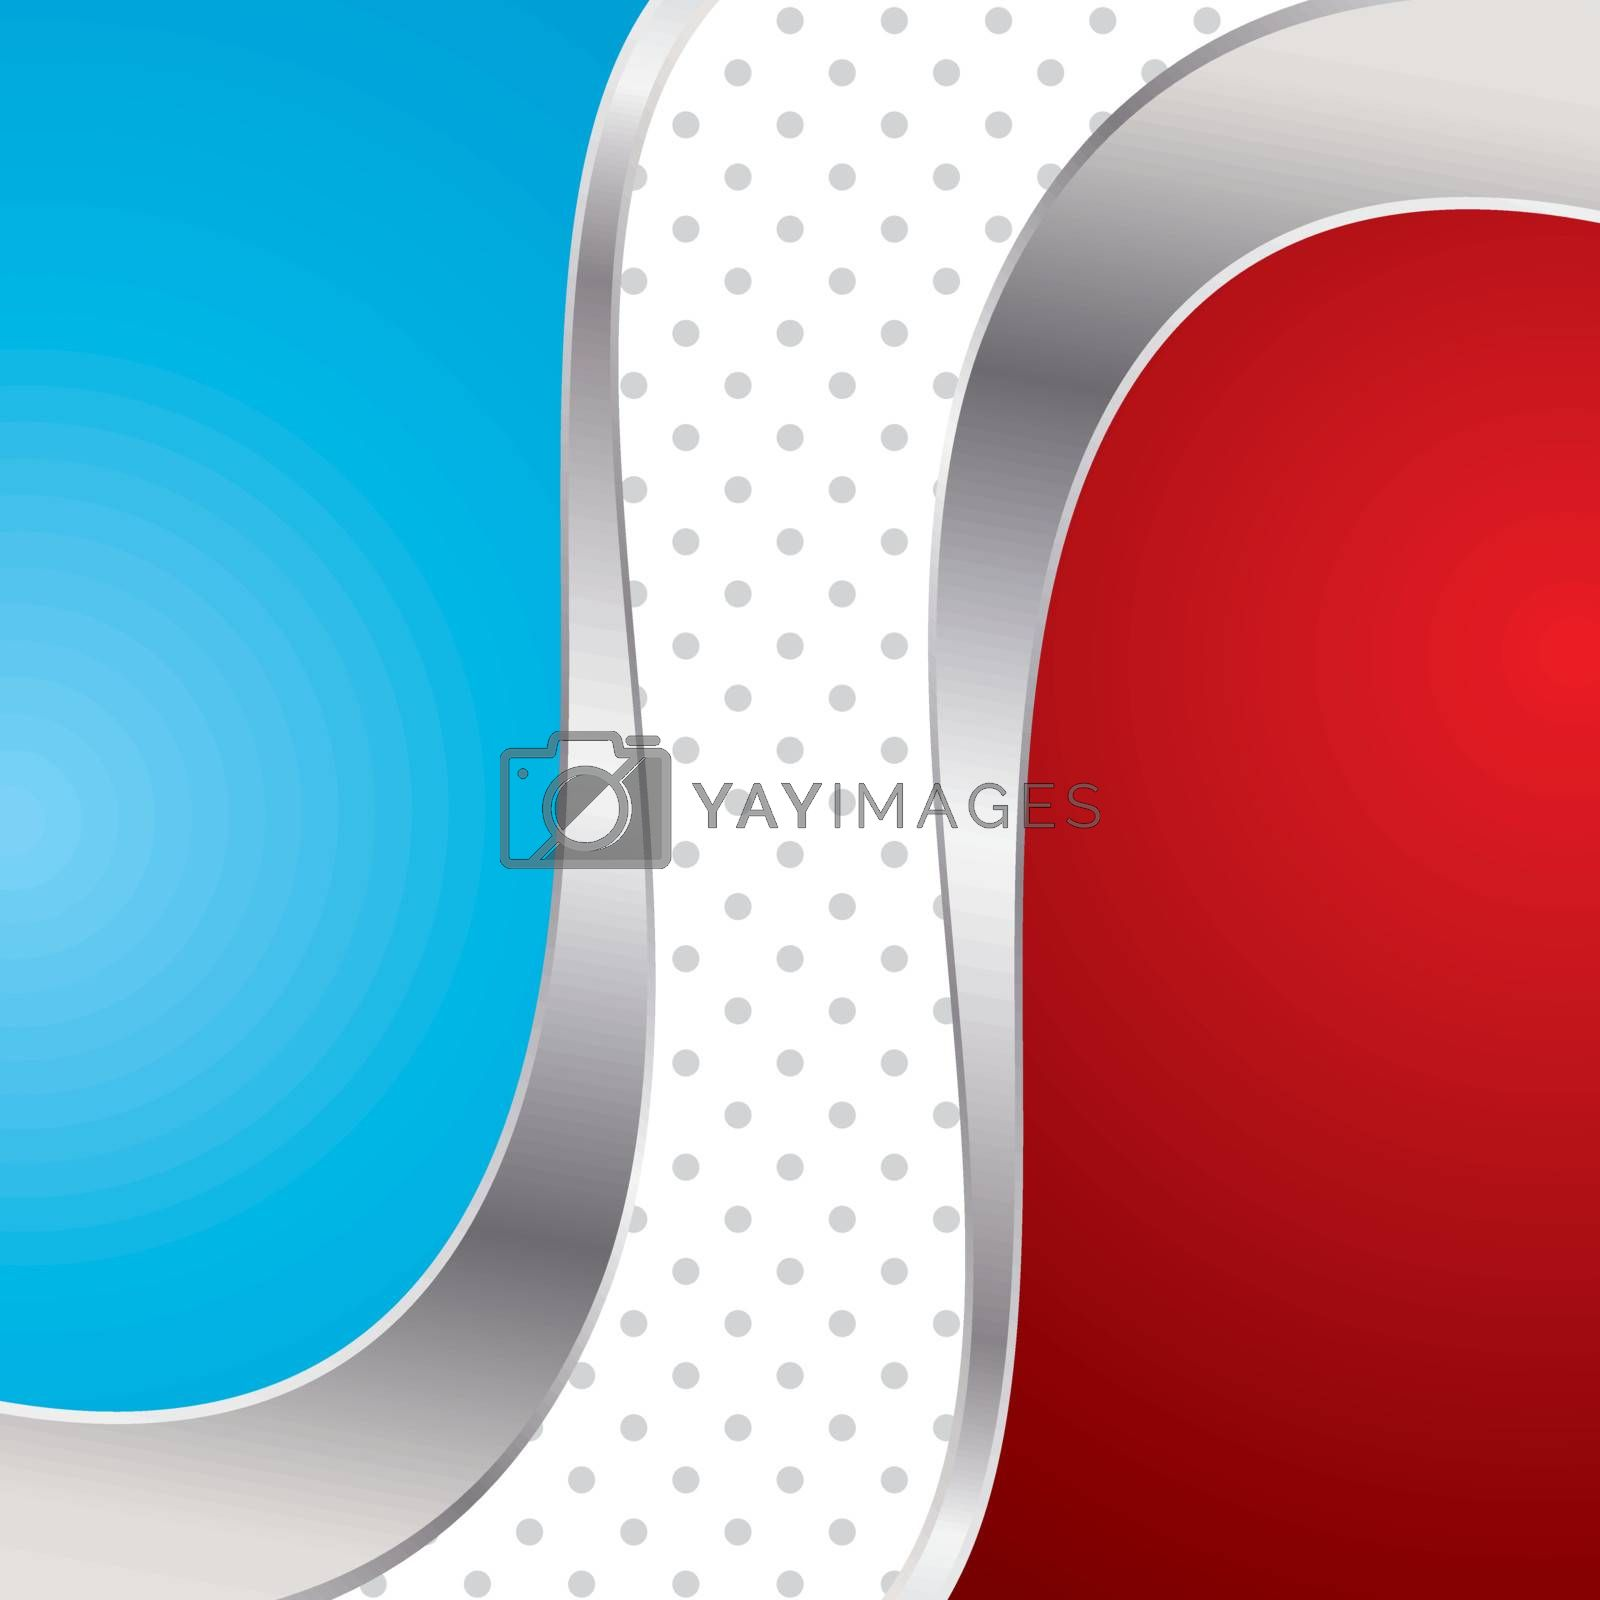 Vector illustration colorful abstract background. Trendy blue and red wave with metal frame.